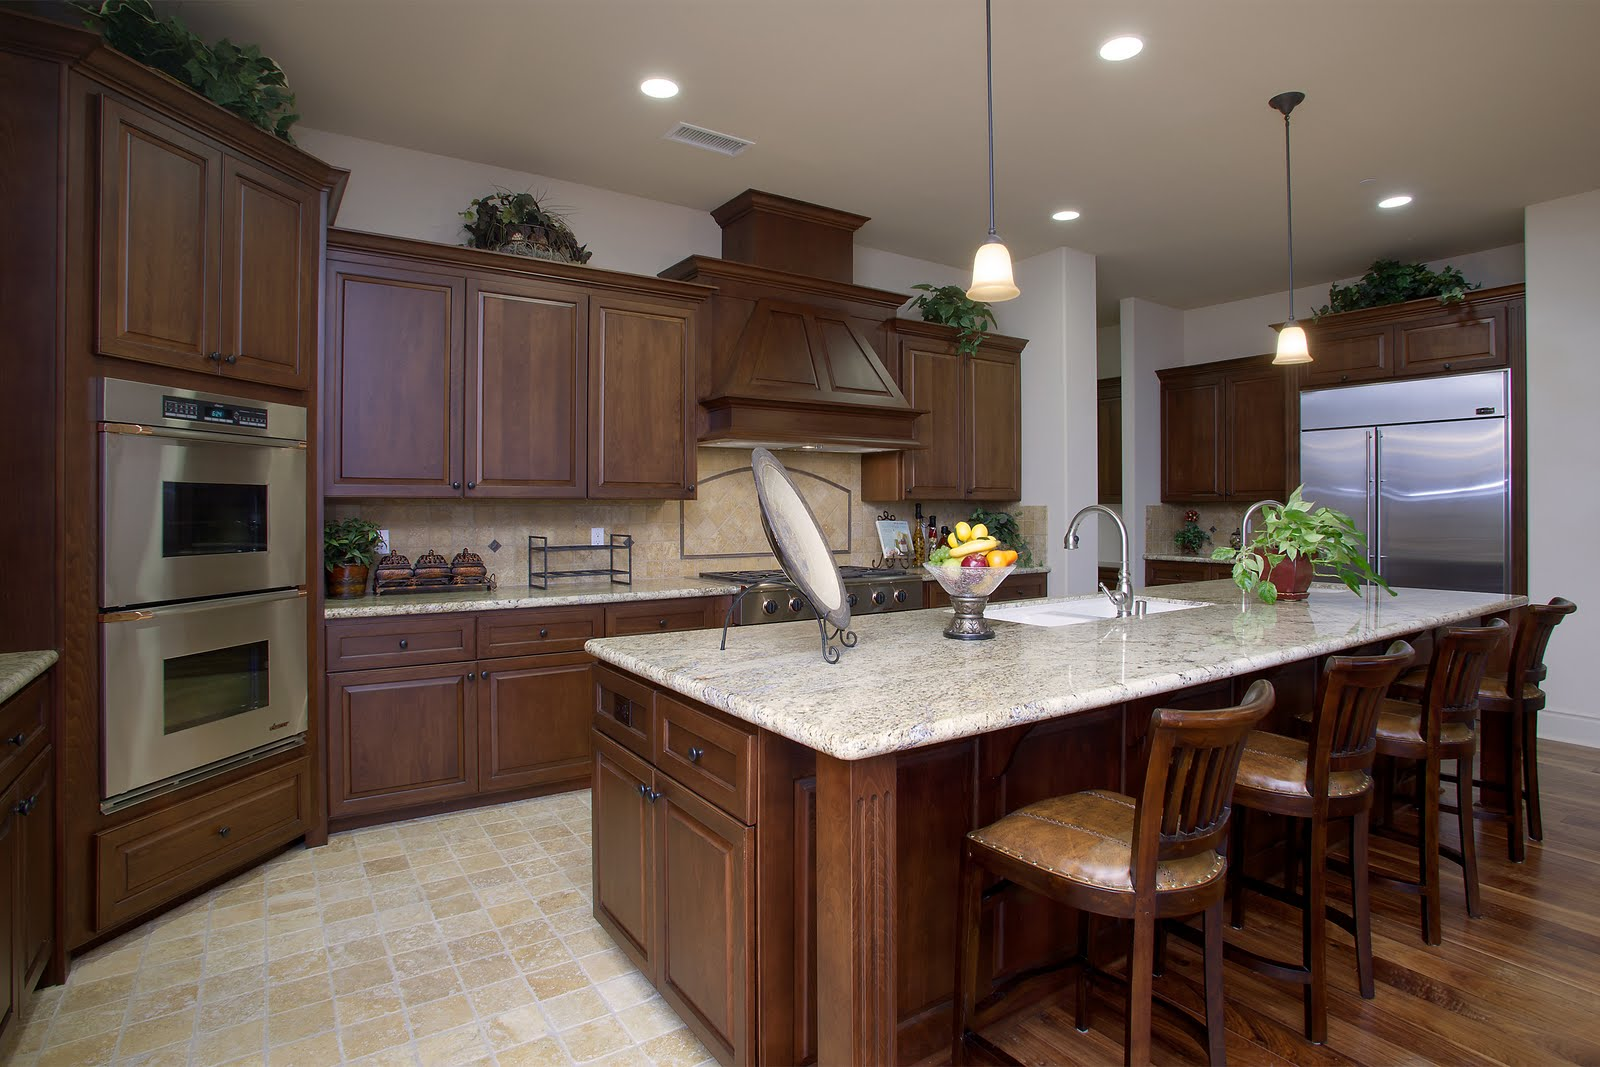 Kitchen model homes kitchen design photos 2015 for Model kitchen images